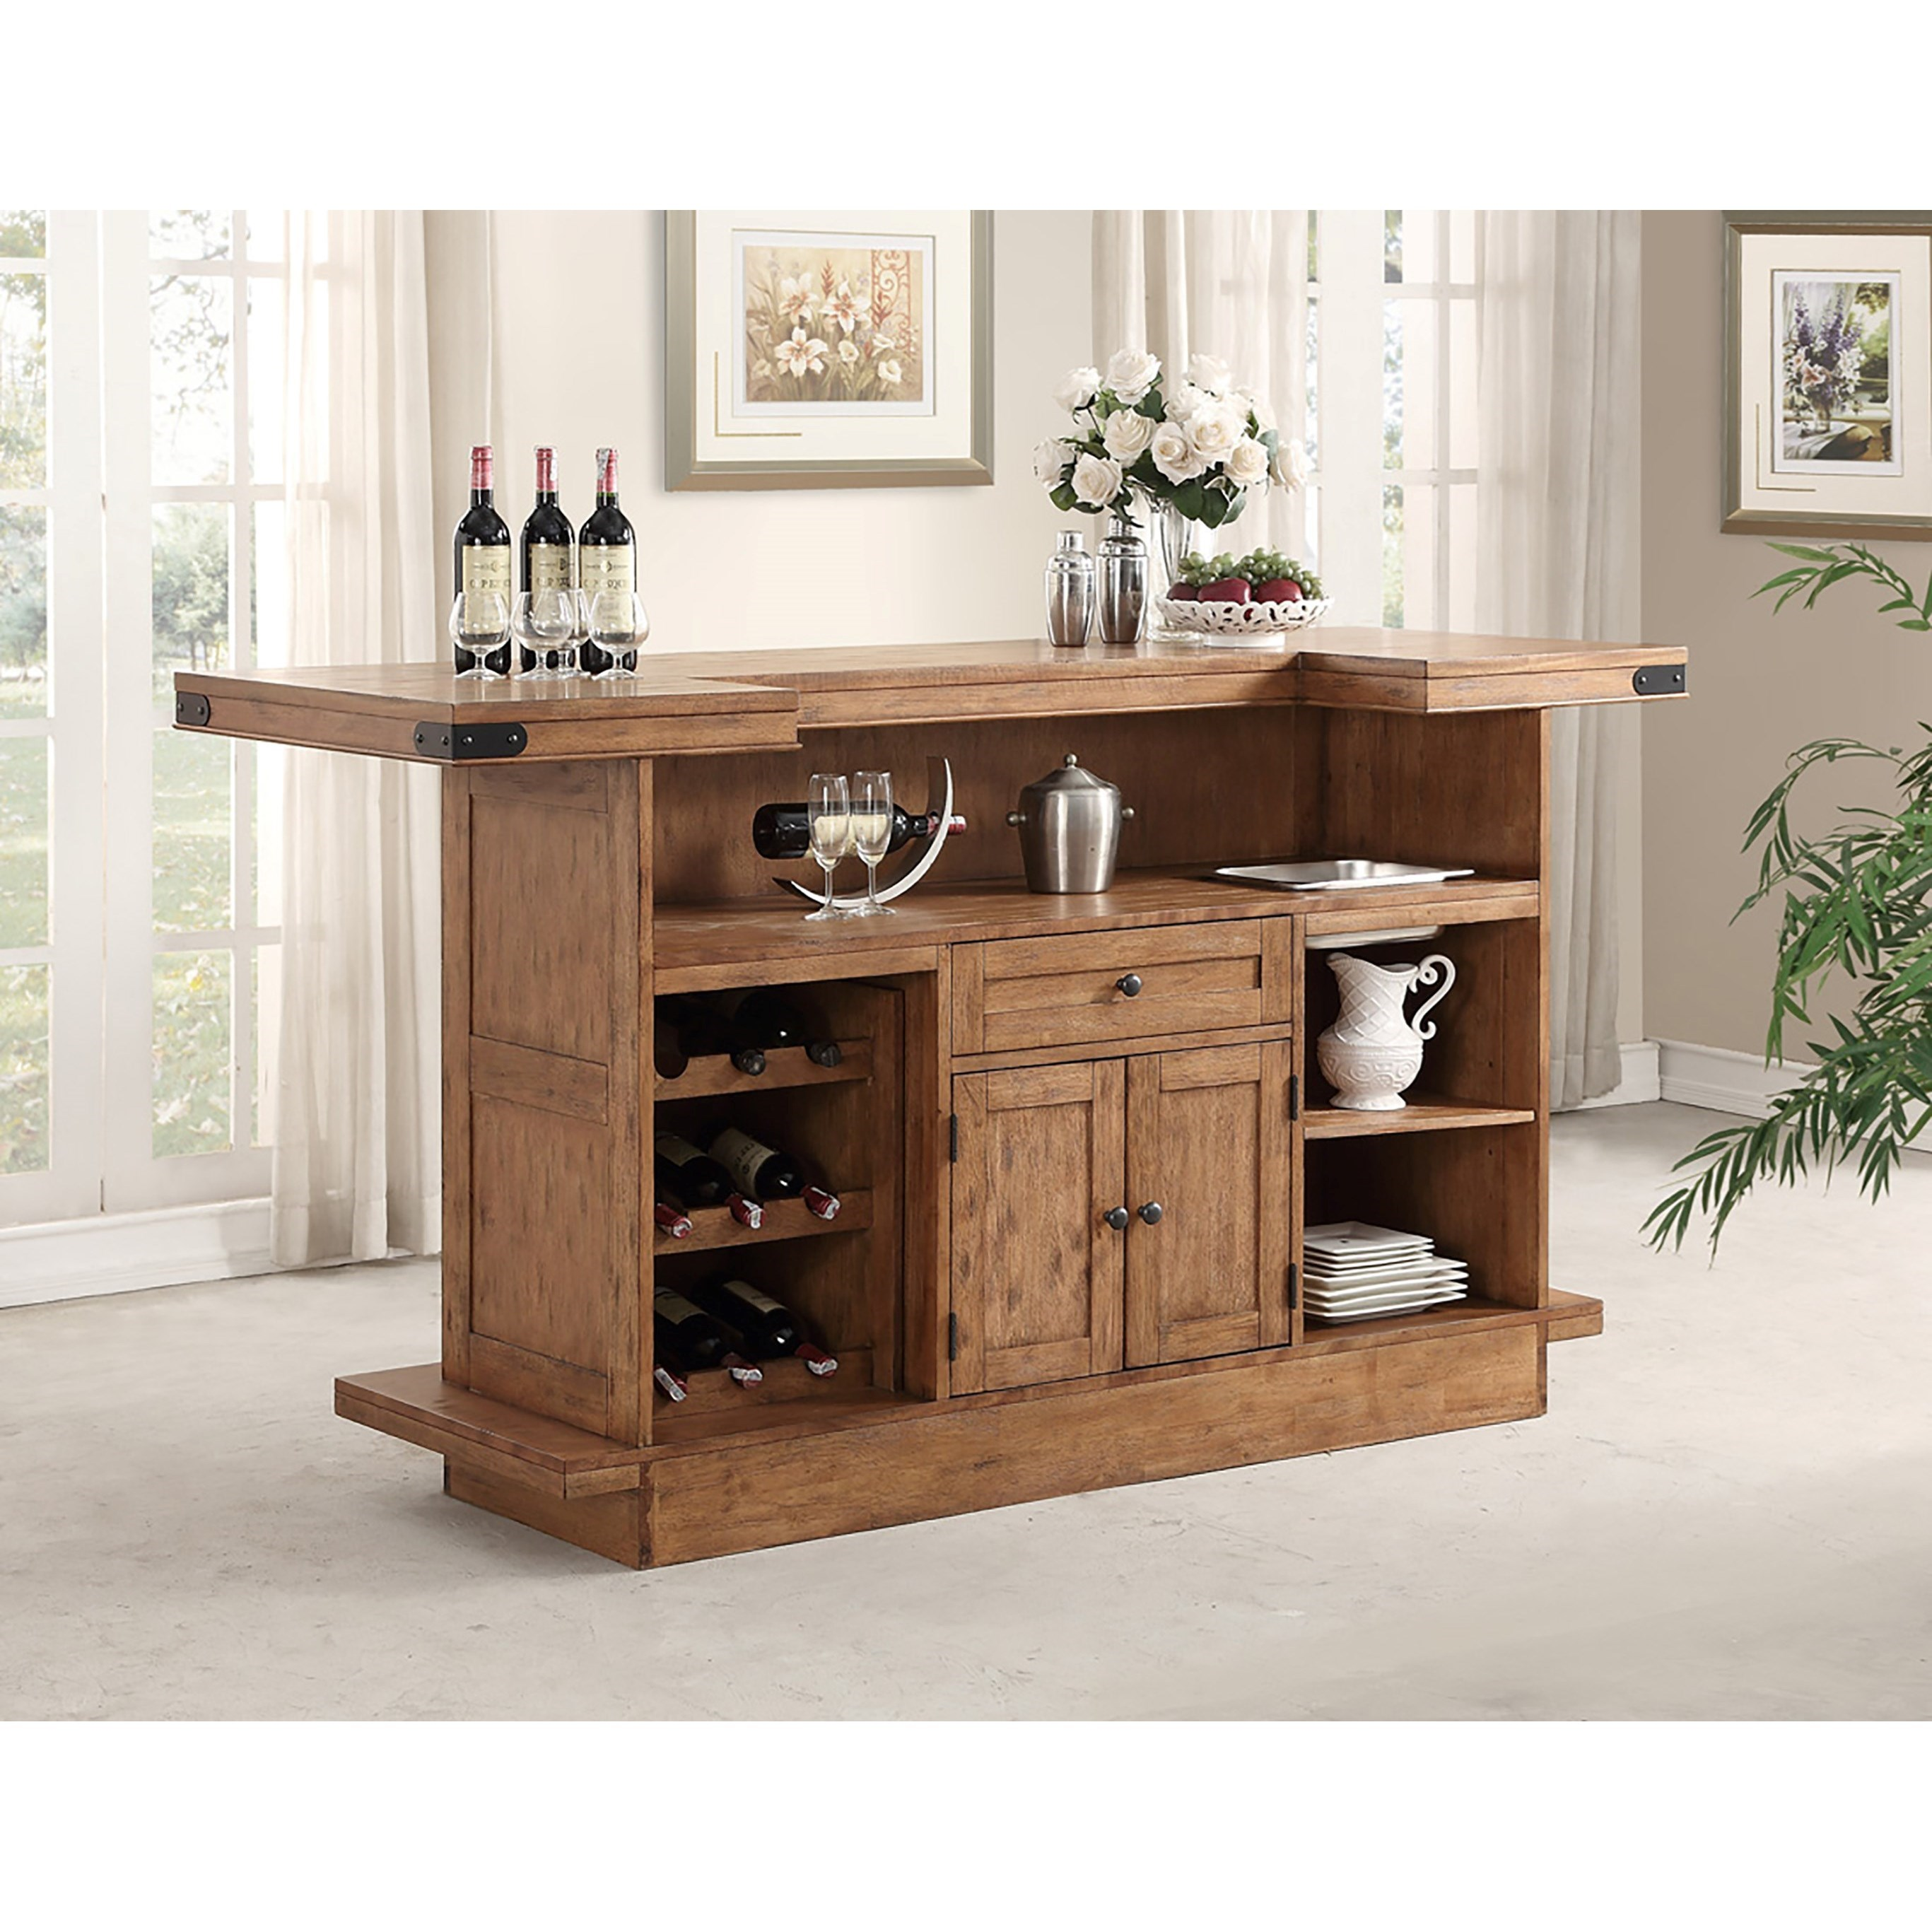 Shenandoah bar with built in wine rack by e c i furniture wolf and gardiner wolf furniture